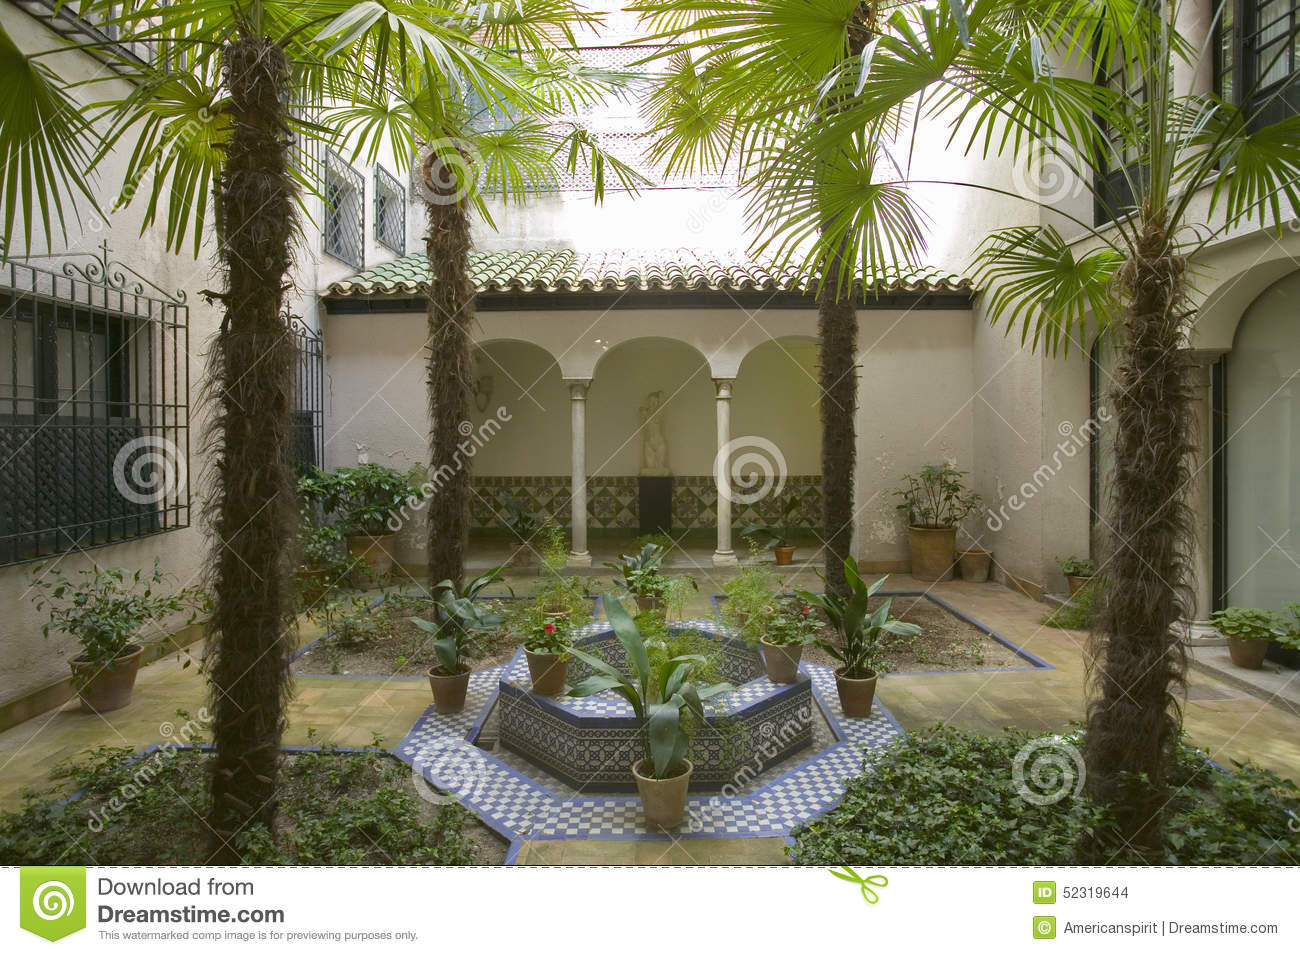 Outdoor Gardens Of The Sorolla Museum In Madrid, Spain Stock Photo ...